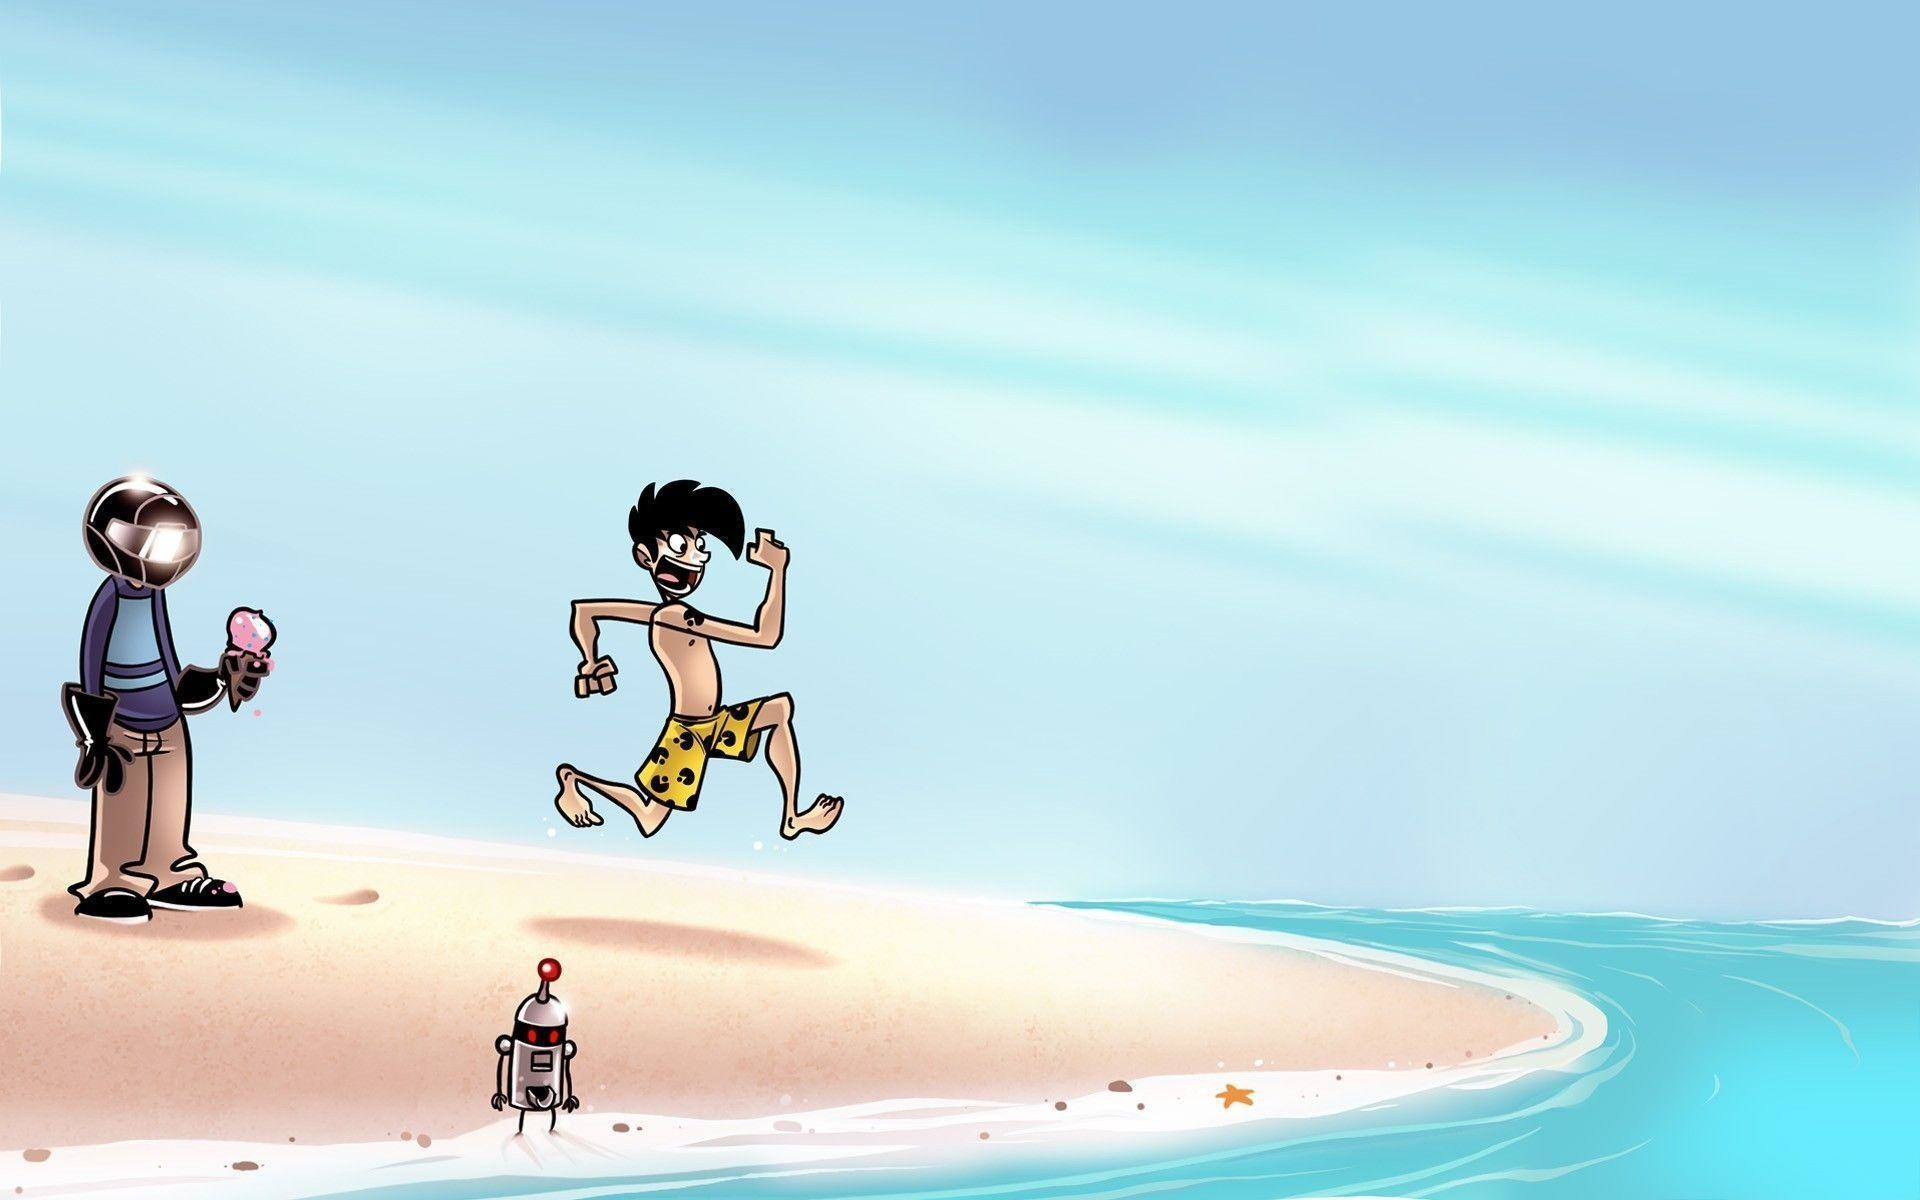 1920x1200 Penny Arcade Wallpaper 143695 High Definition Wallpapers | Suwall.